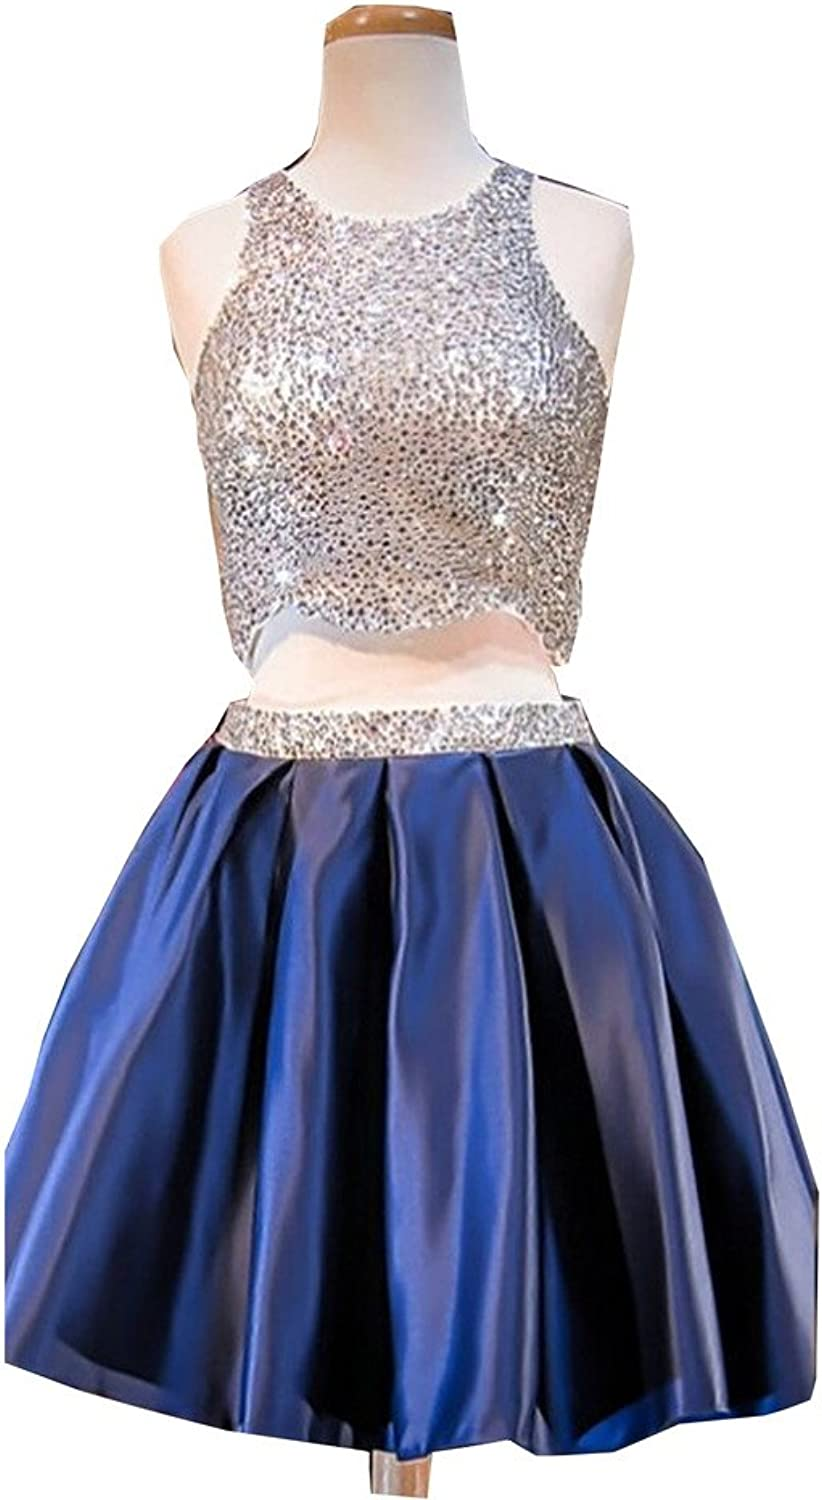 Sound of blossoming Beaded Two Pieces Short Prom Homecoming Dress Party Gown 119